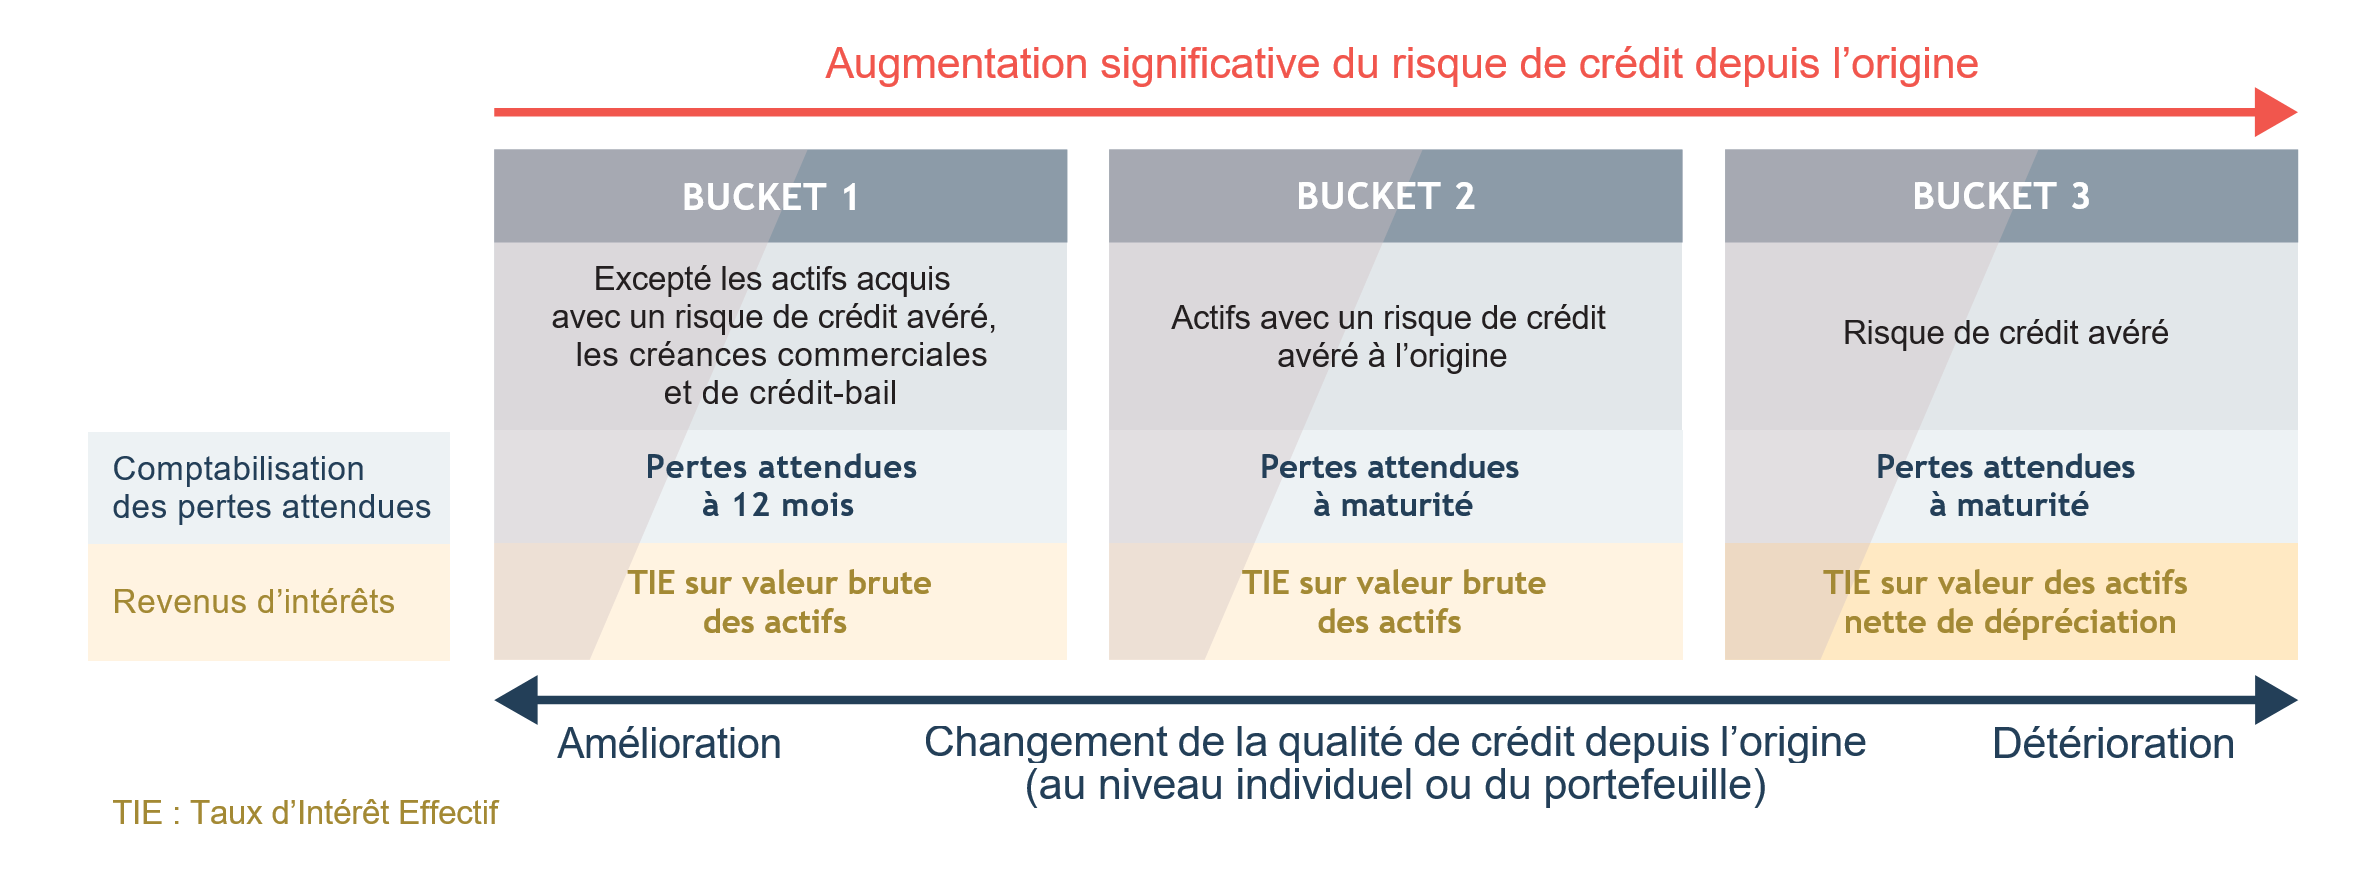 IFRS 9 : 3 niveaux (Buckets)